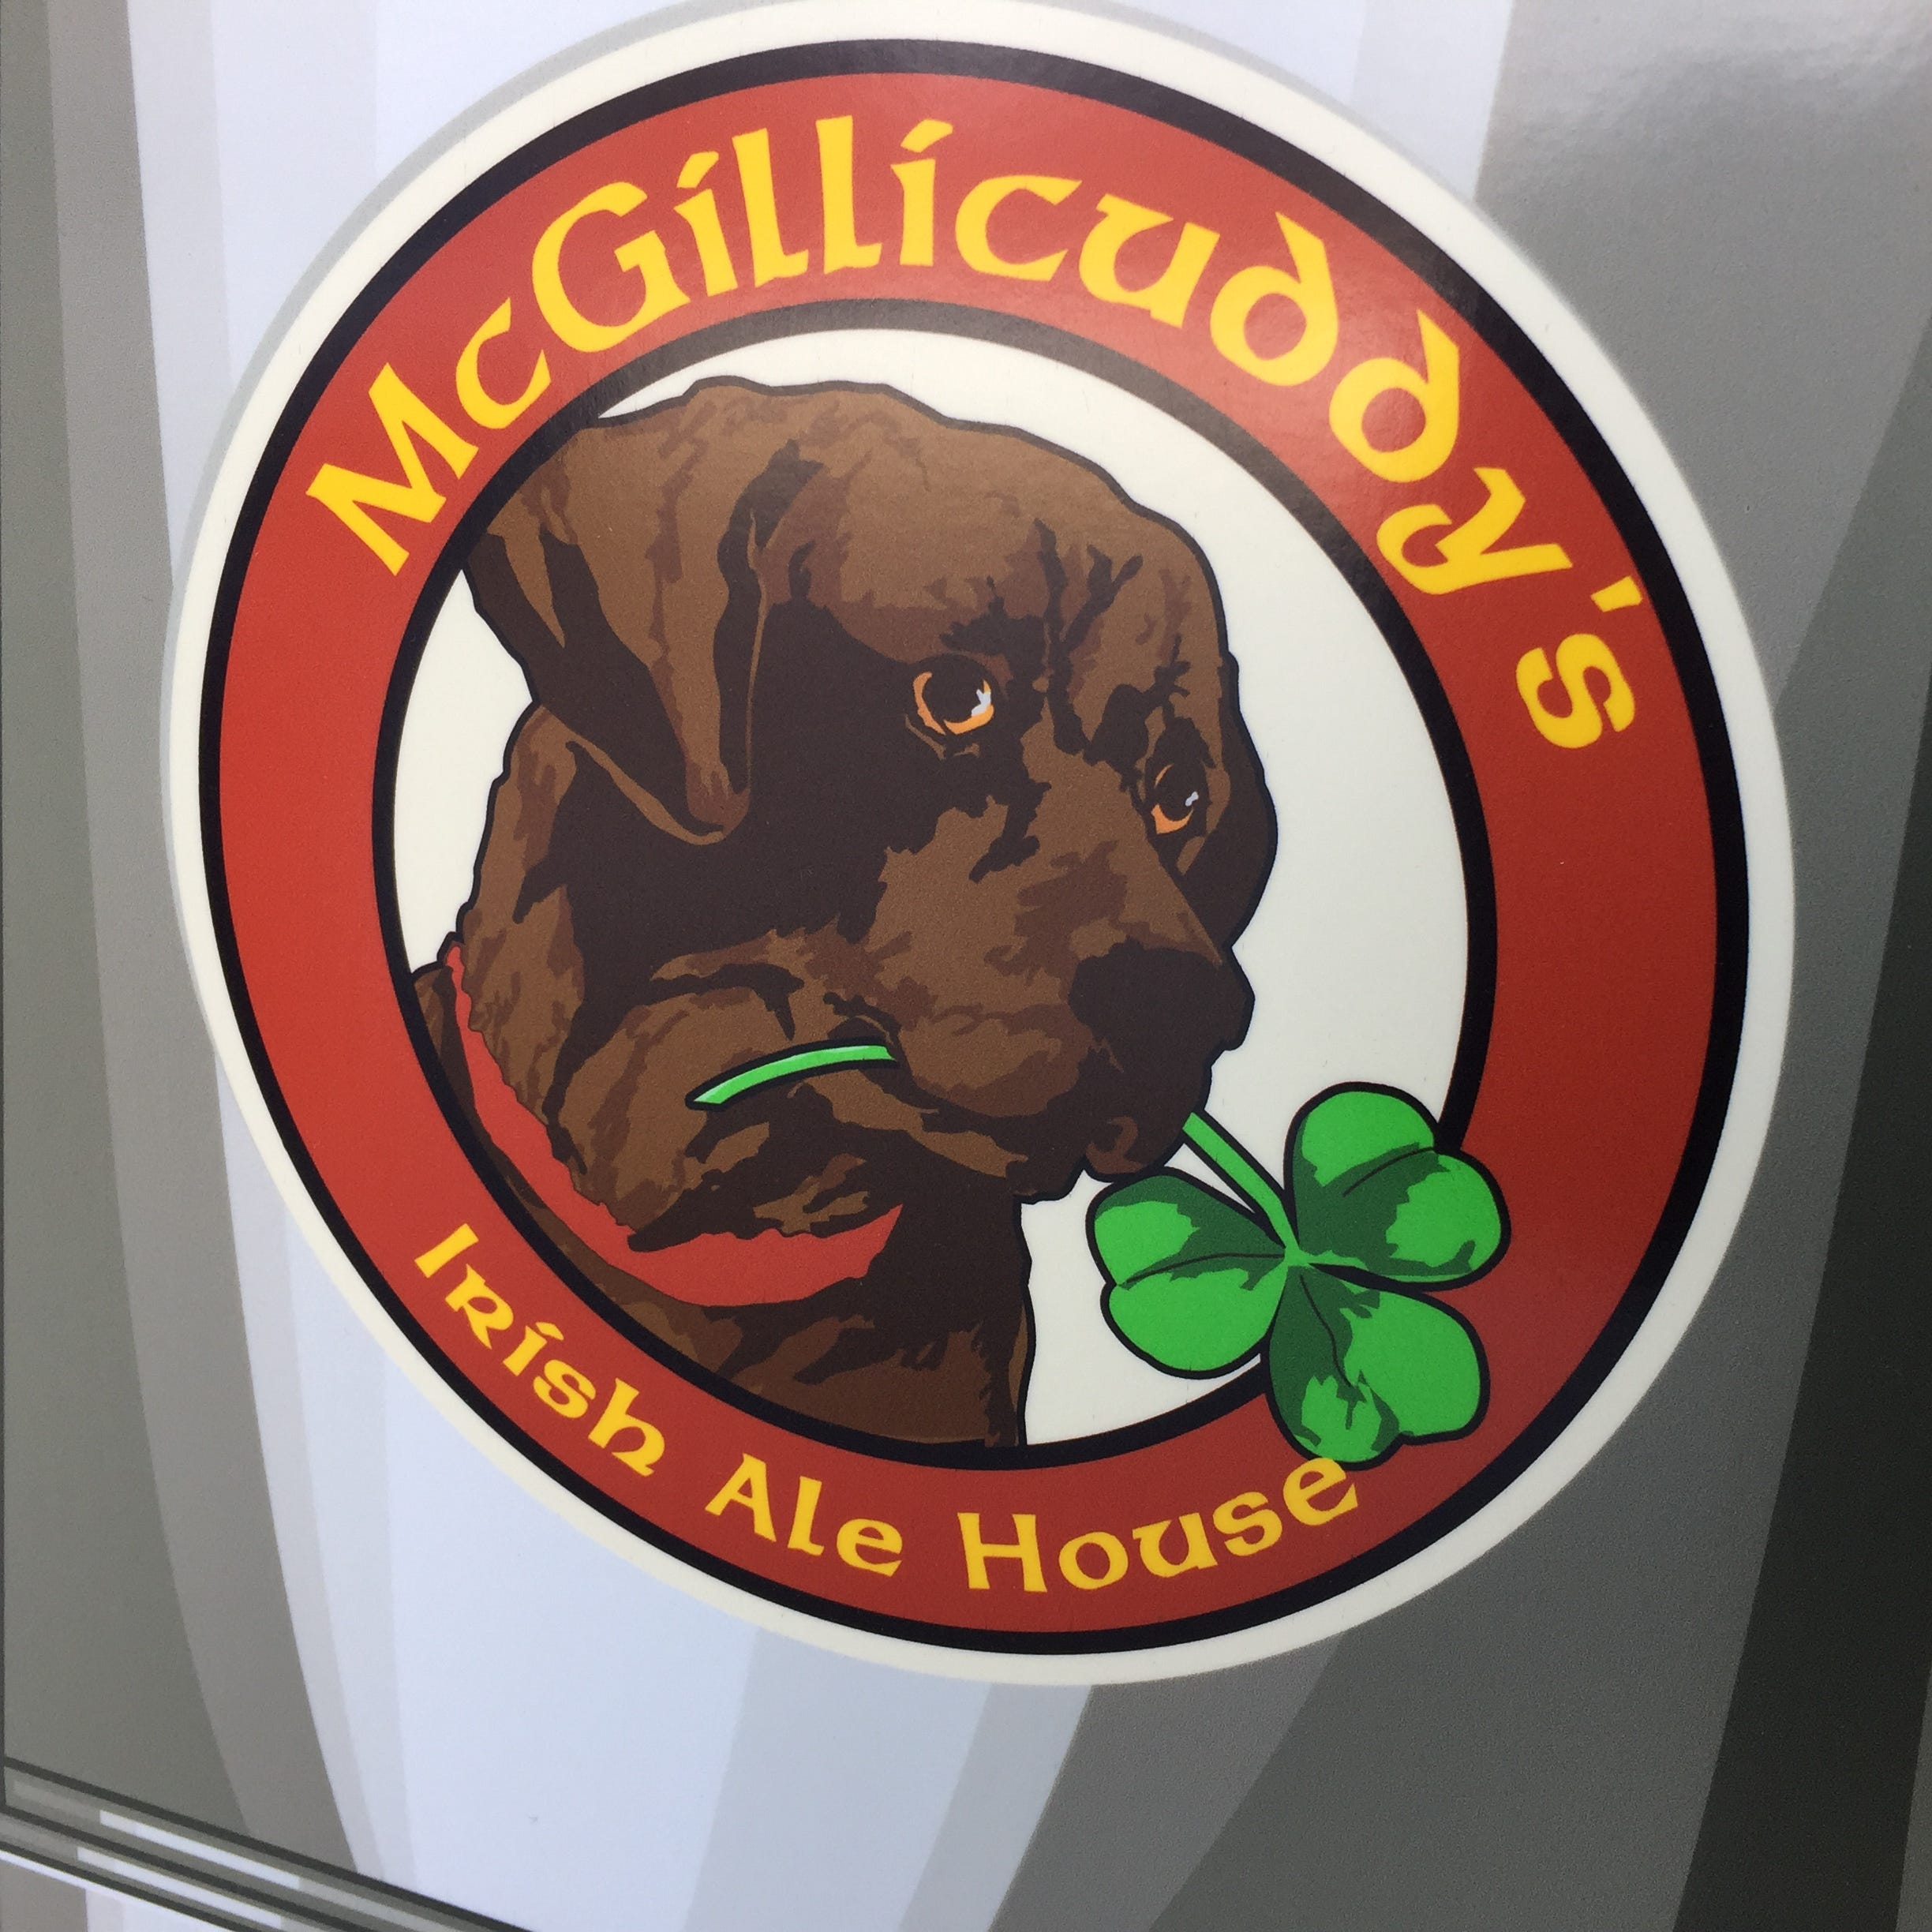 Chittenden County restaurant/bar chain McGillicuddy's to open new location with 40 taps